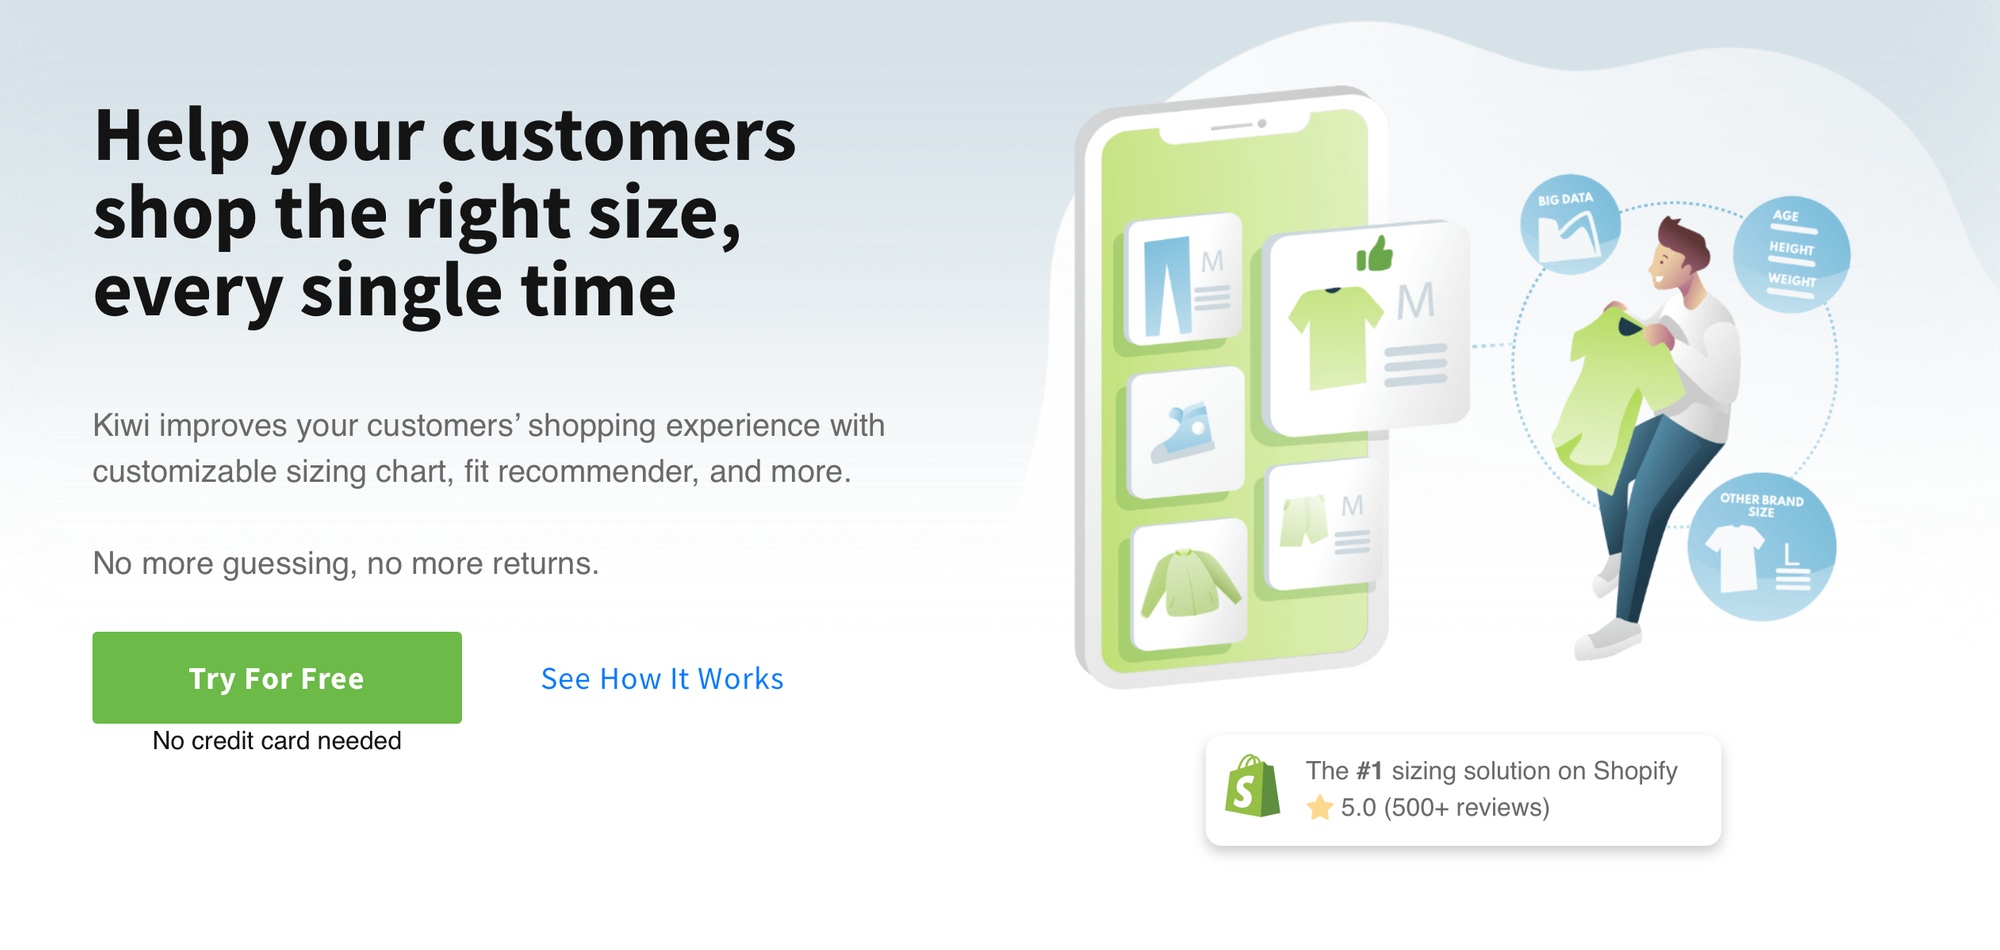 5 Must-Have Shopify Apps That Can Improve Your Online Customer Experience